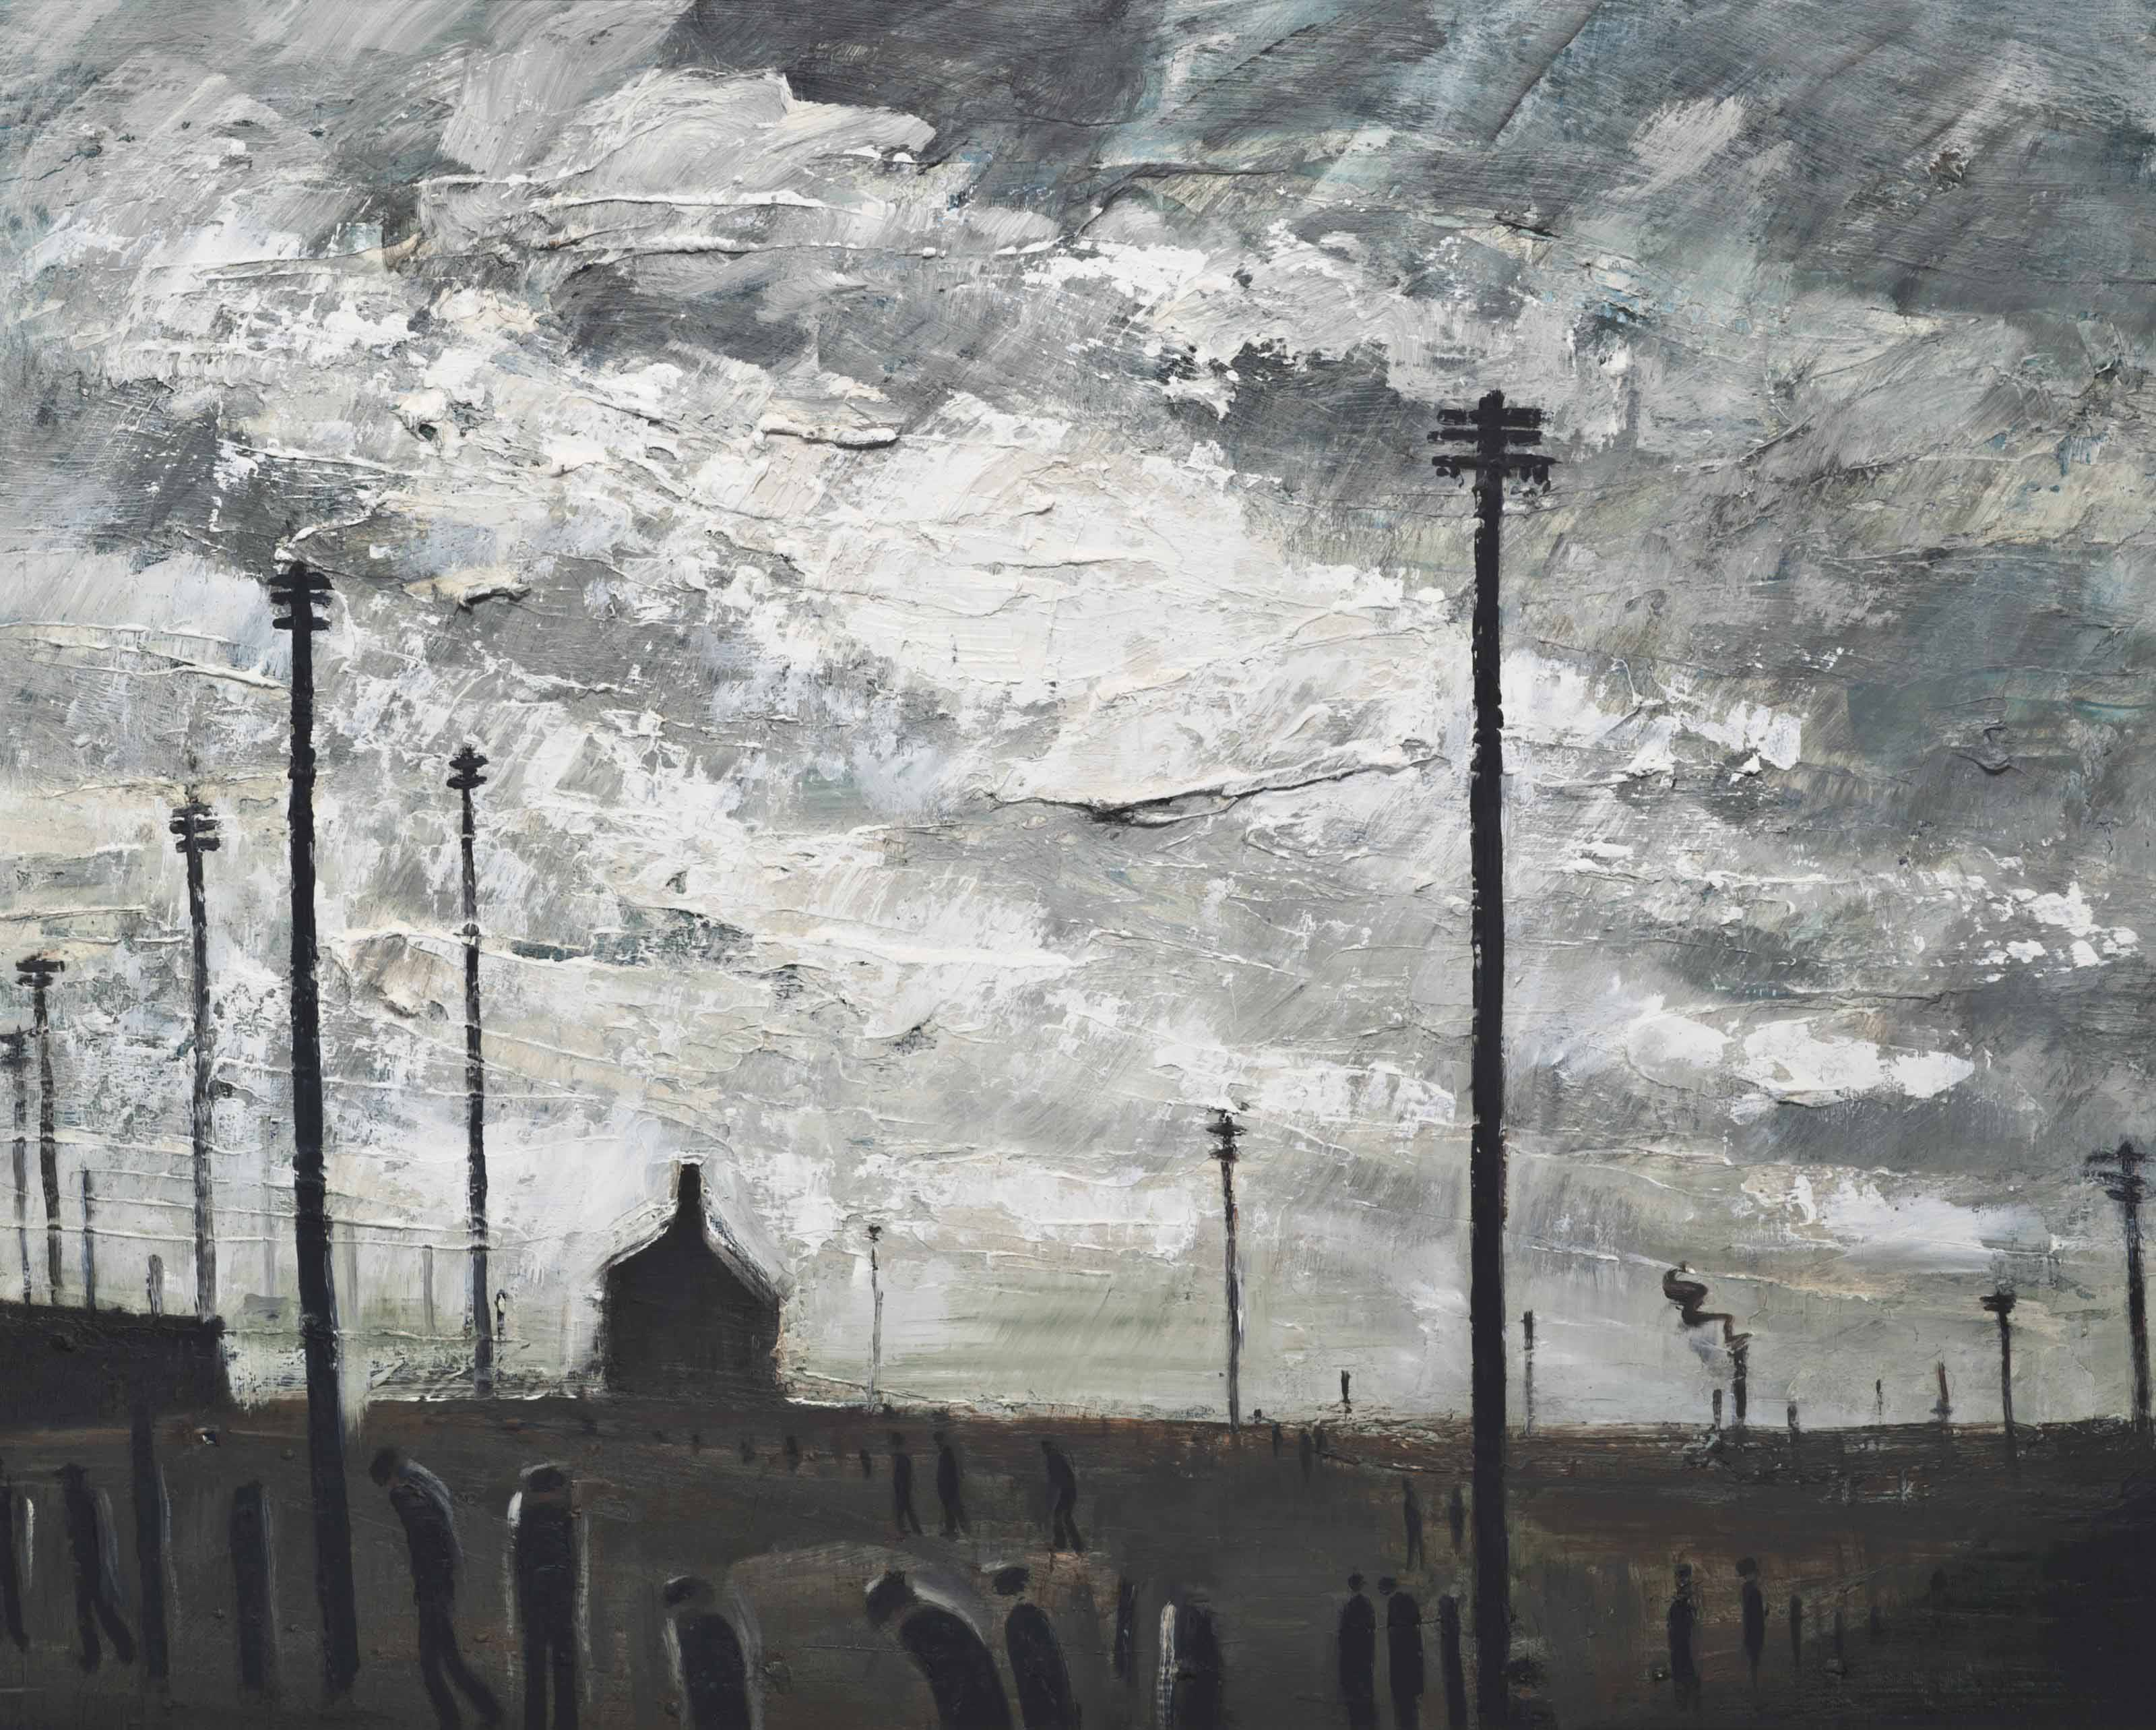 Industrial Landscape with Telegraph Poles